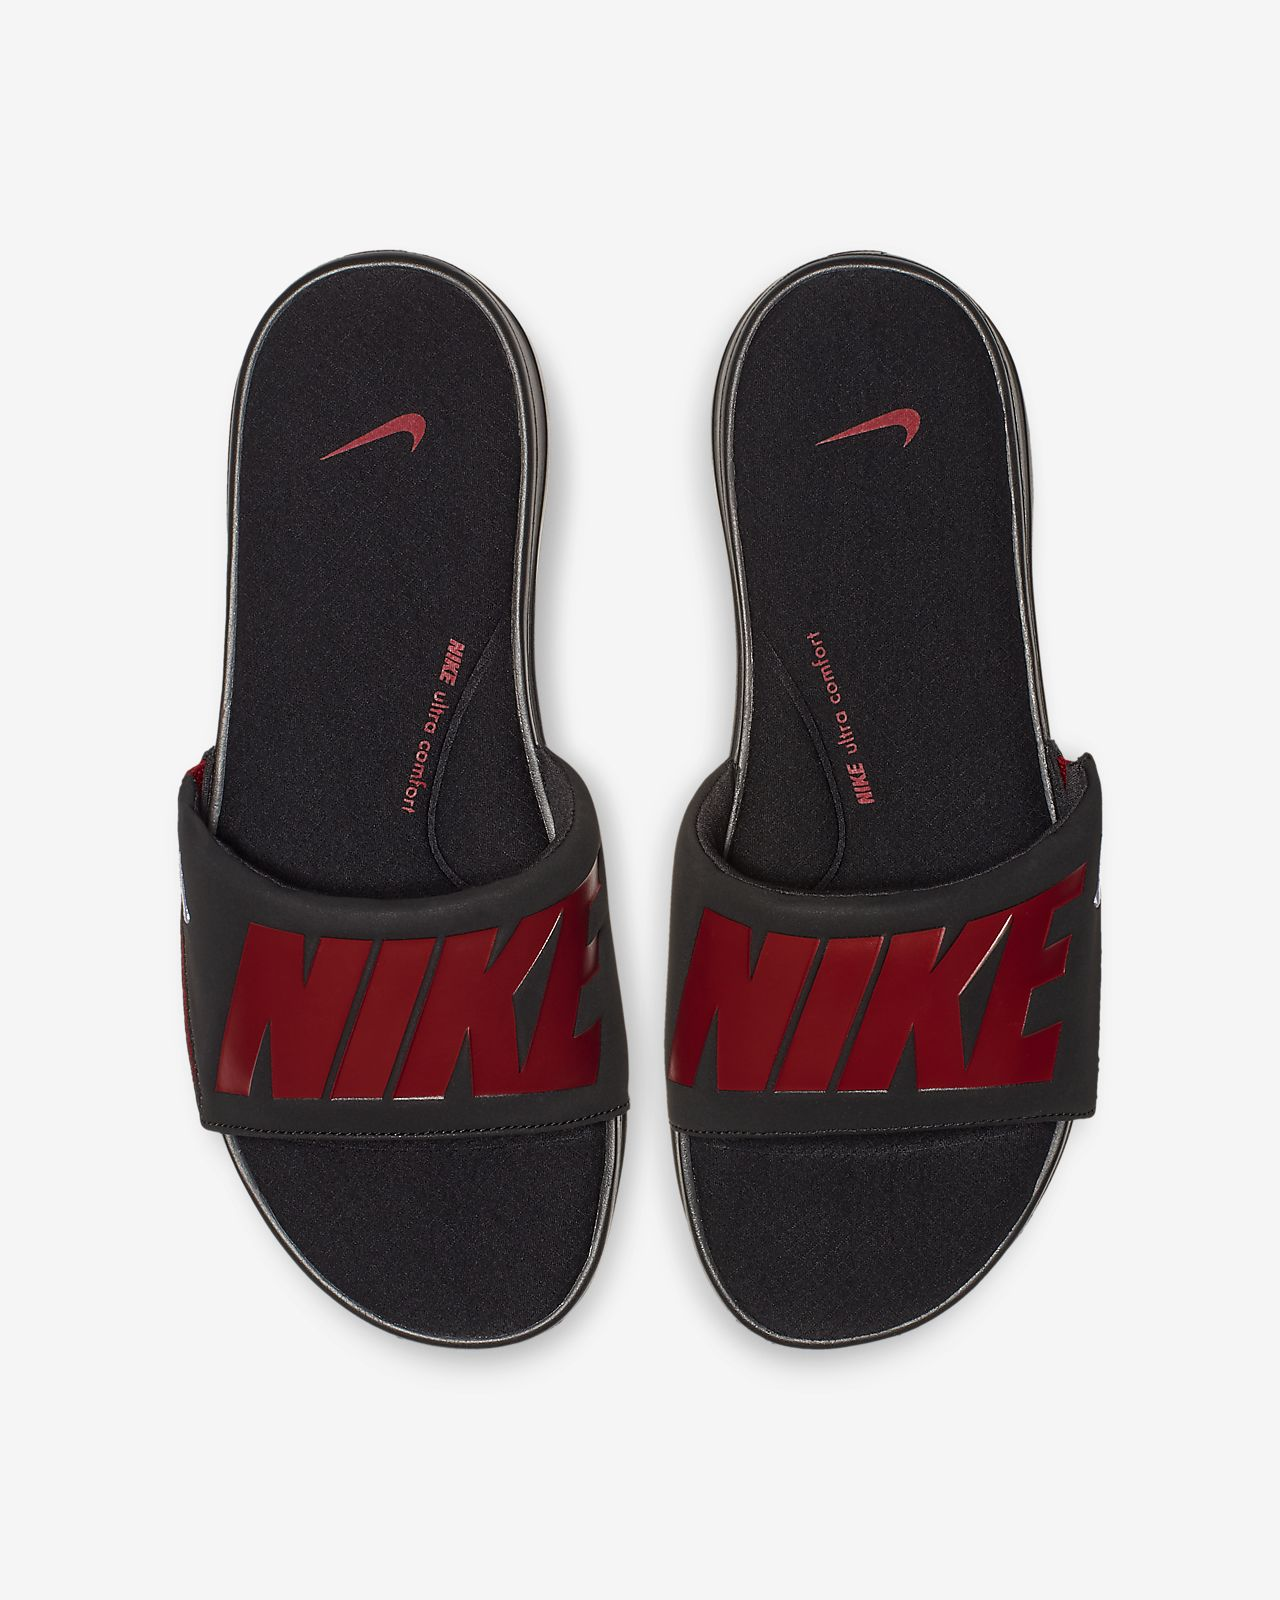 a848a9dd52d1 Nike Ultra Comfort 3 Men s Slide. Nike.com IN